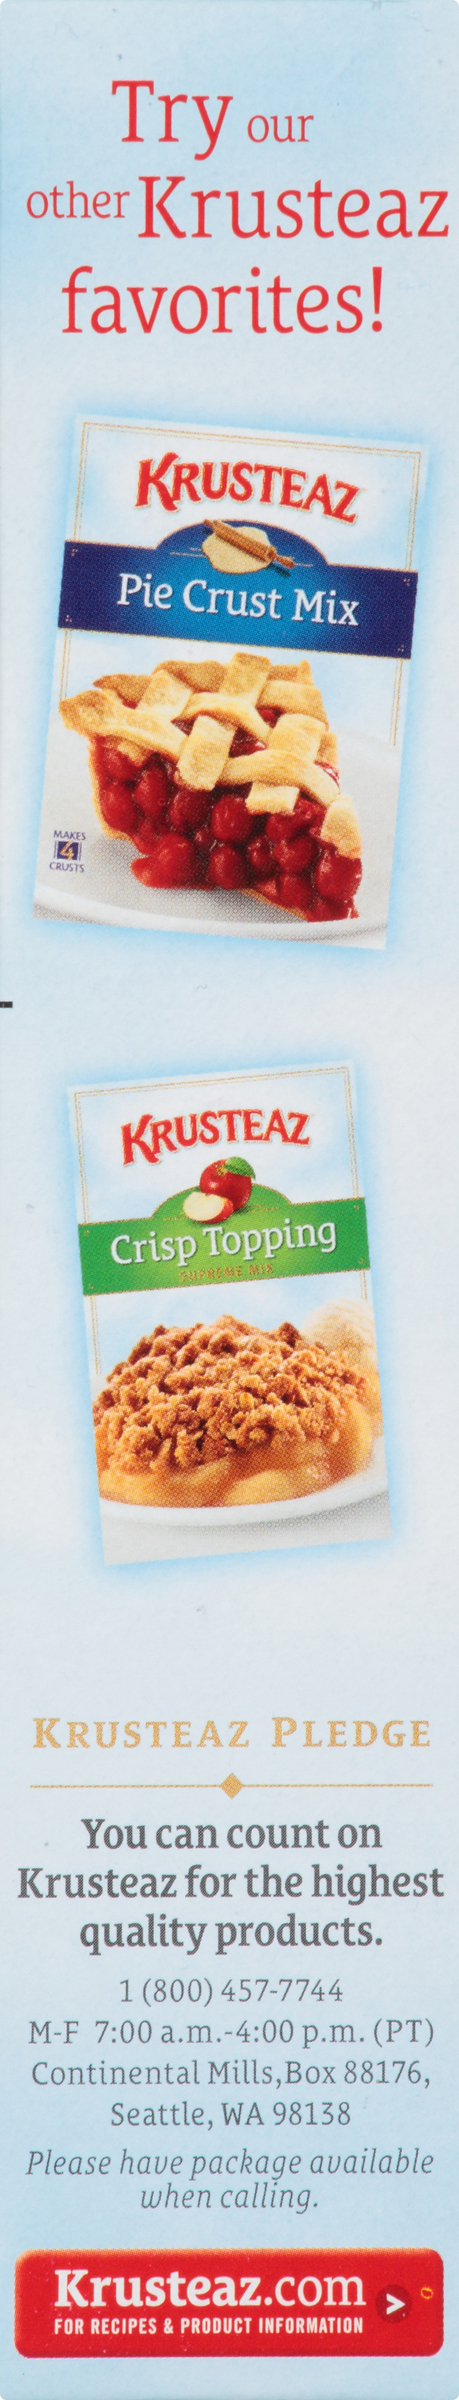 how to make crispy topping